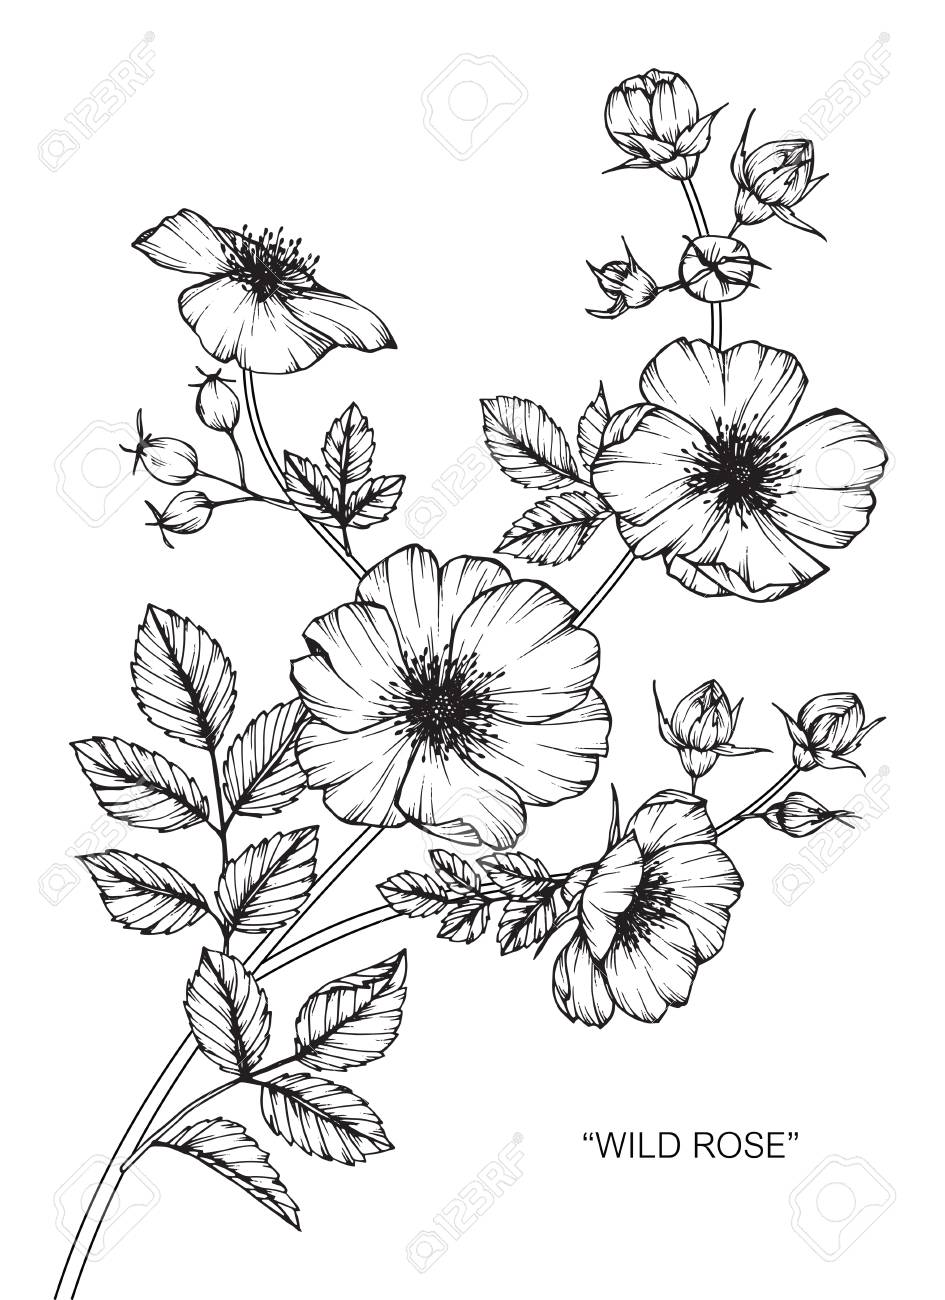 Wild rose flower drawing and sketch with black and white line art vector wild rose flower drawing and sketch with black and white line art mightylinksfo